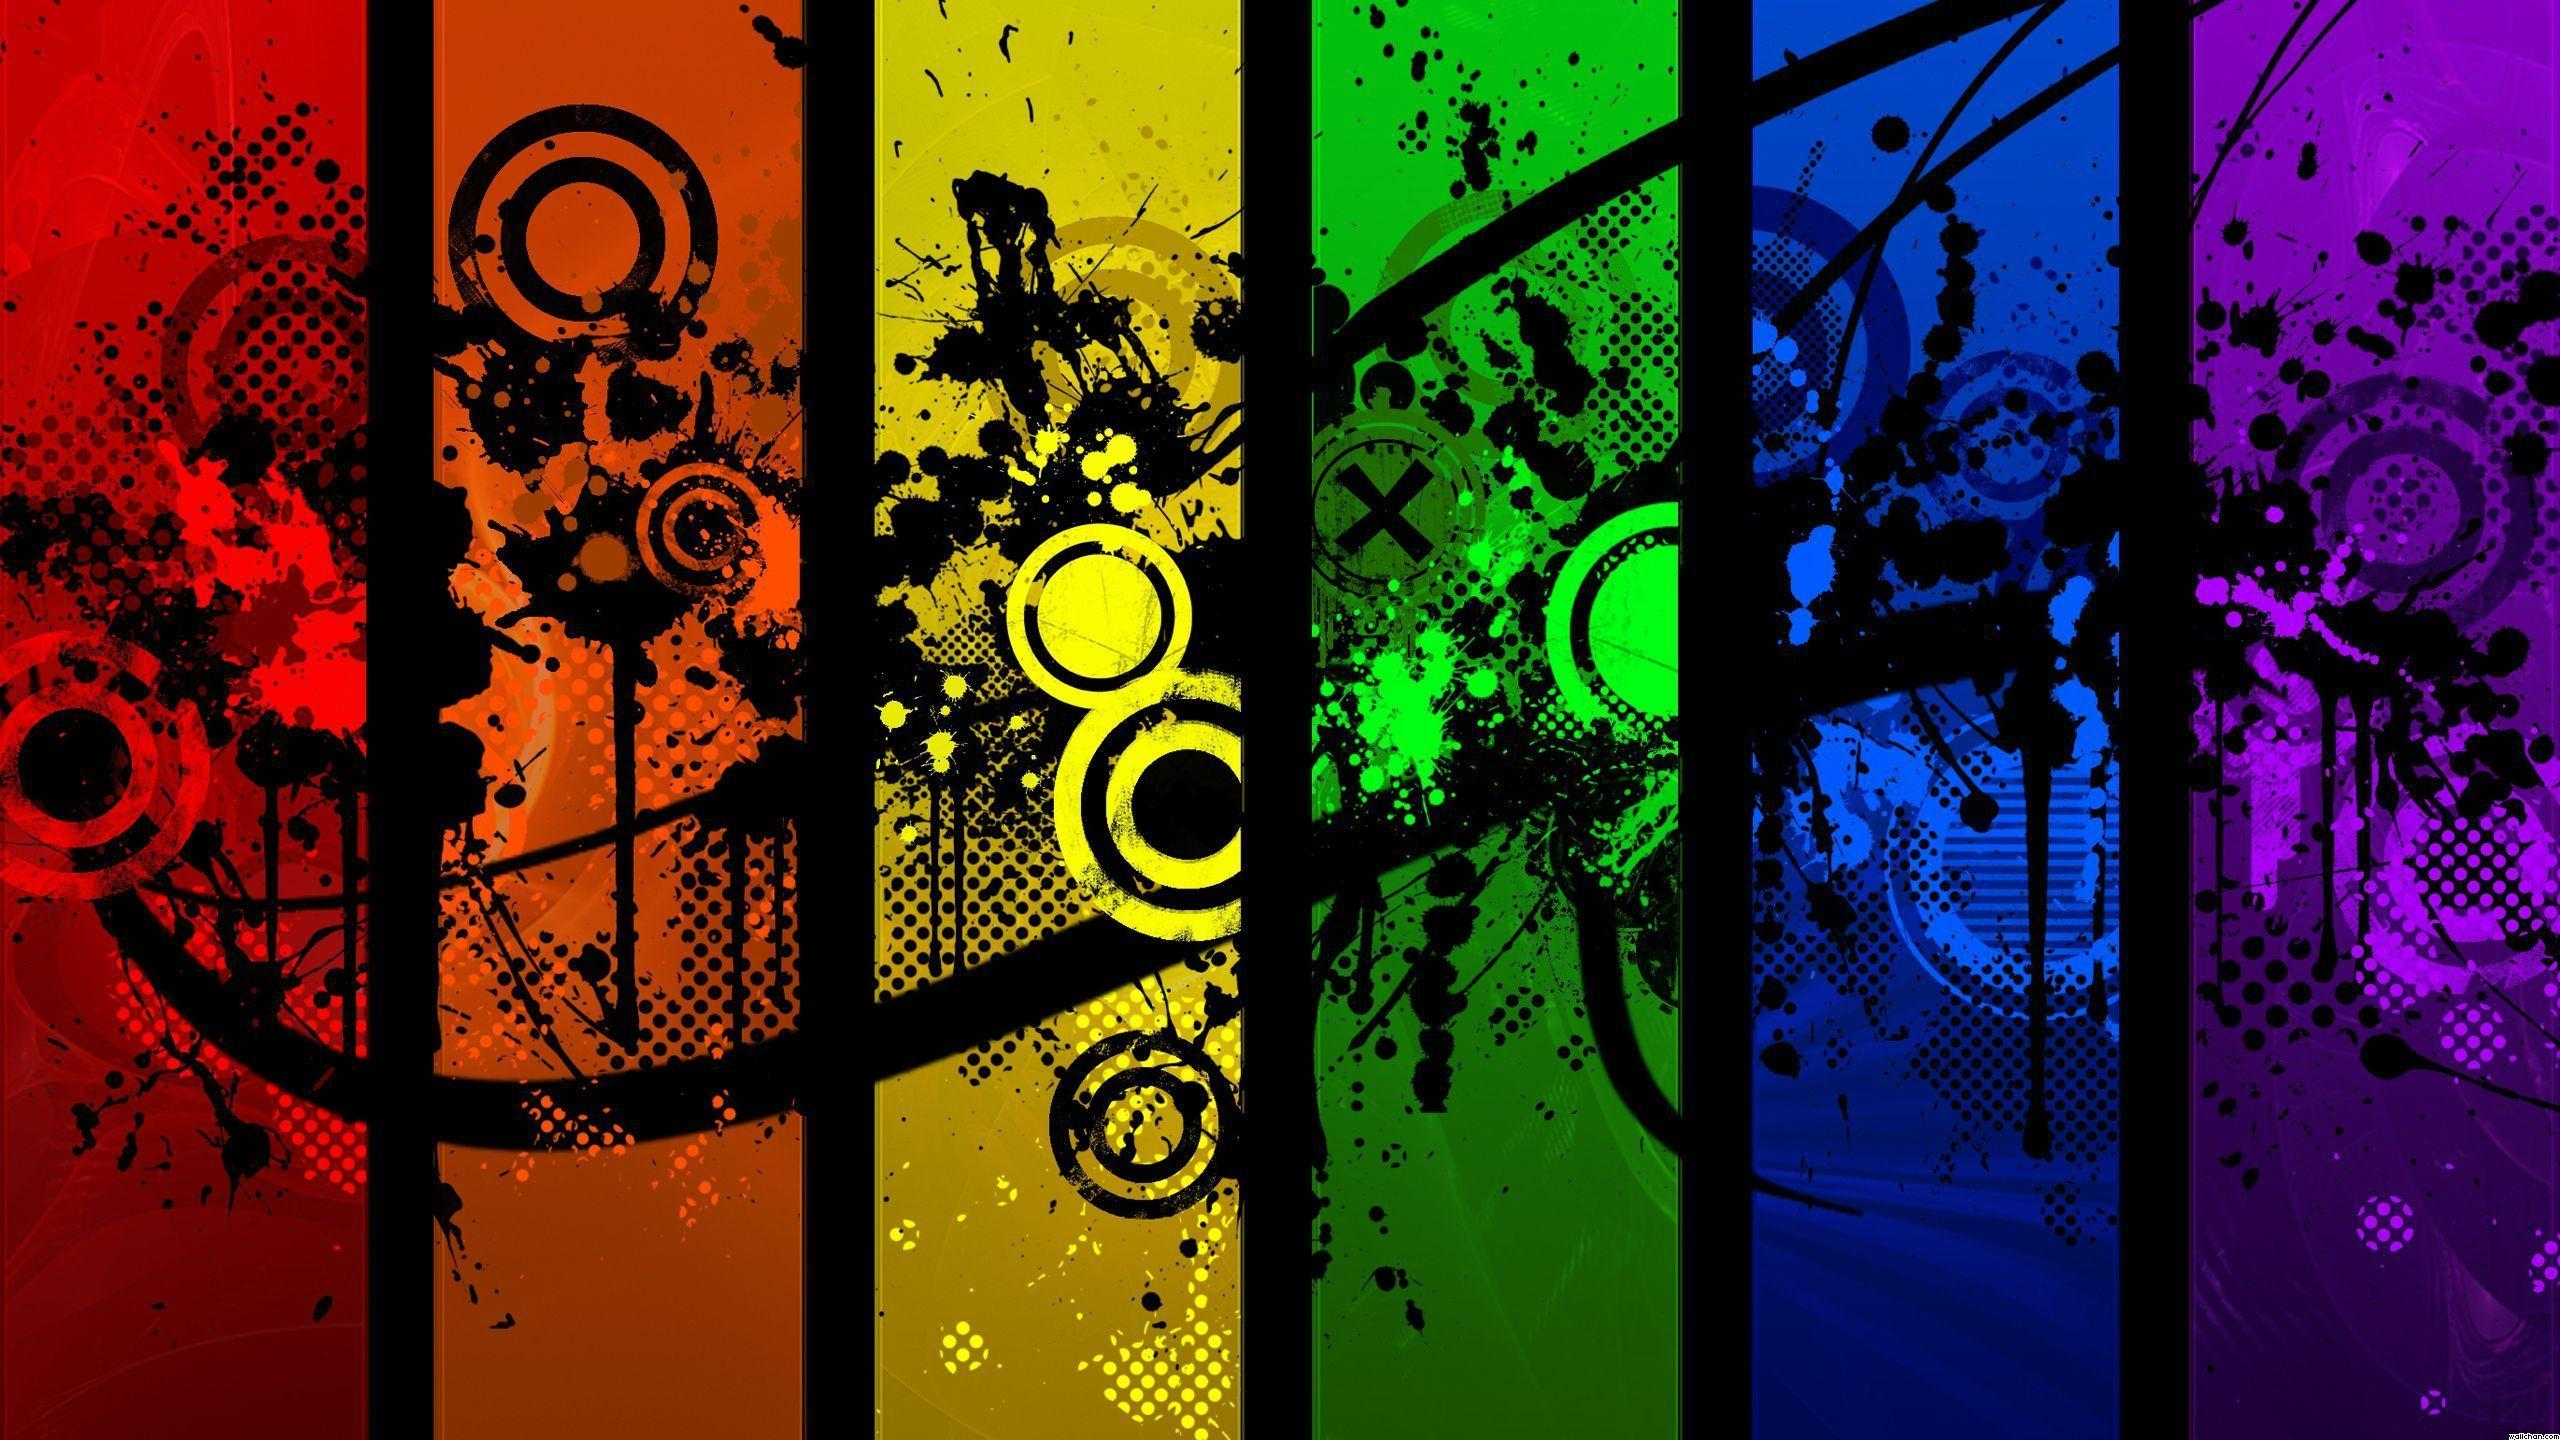 Color splash wallpapers wallpaper cave - High definition colorful wallpapers ...